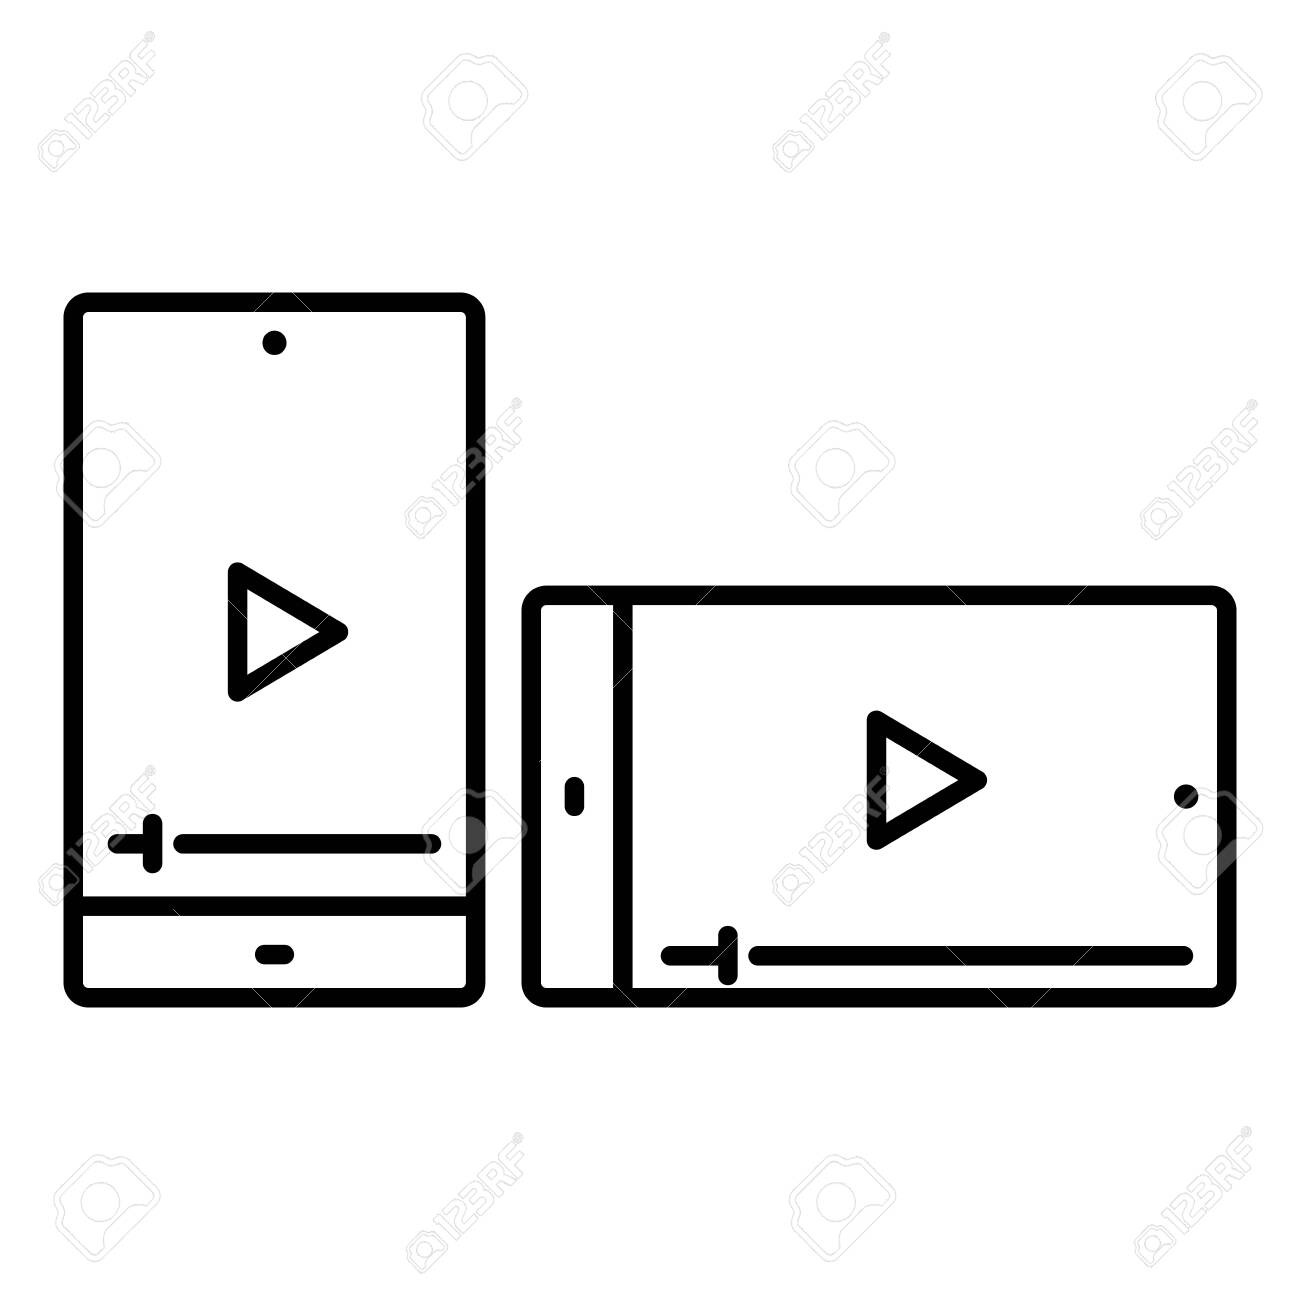 Simple linear icon of a smartphone playing video. - 149594817